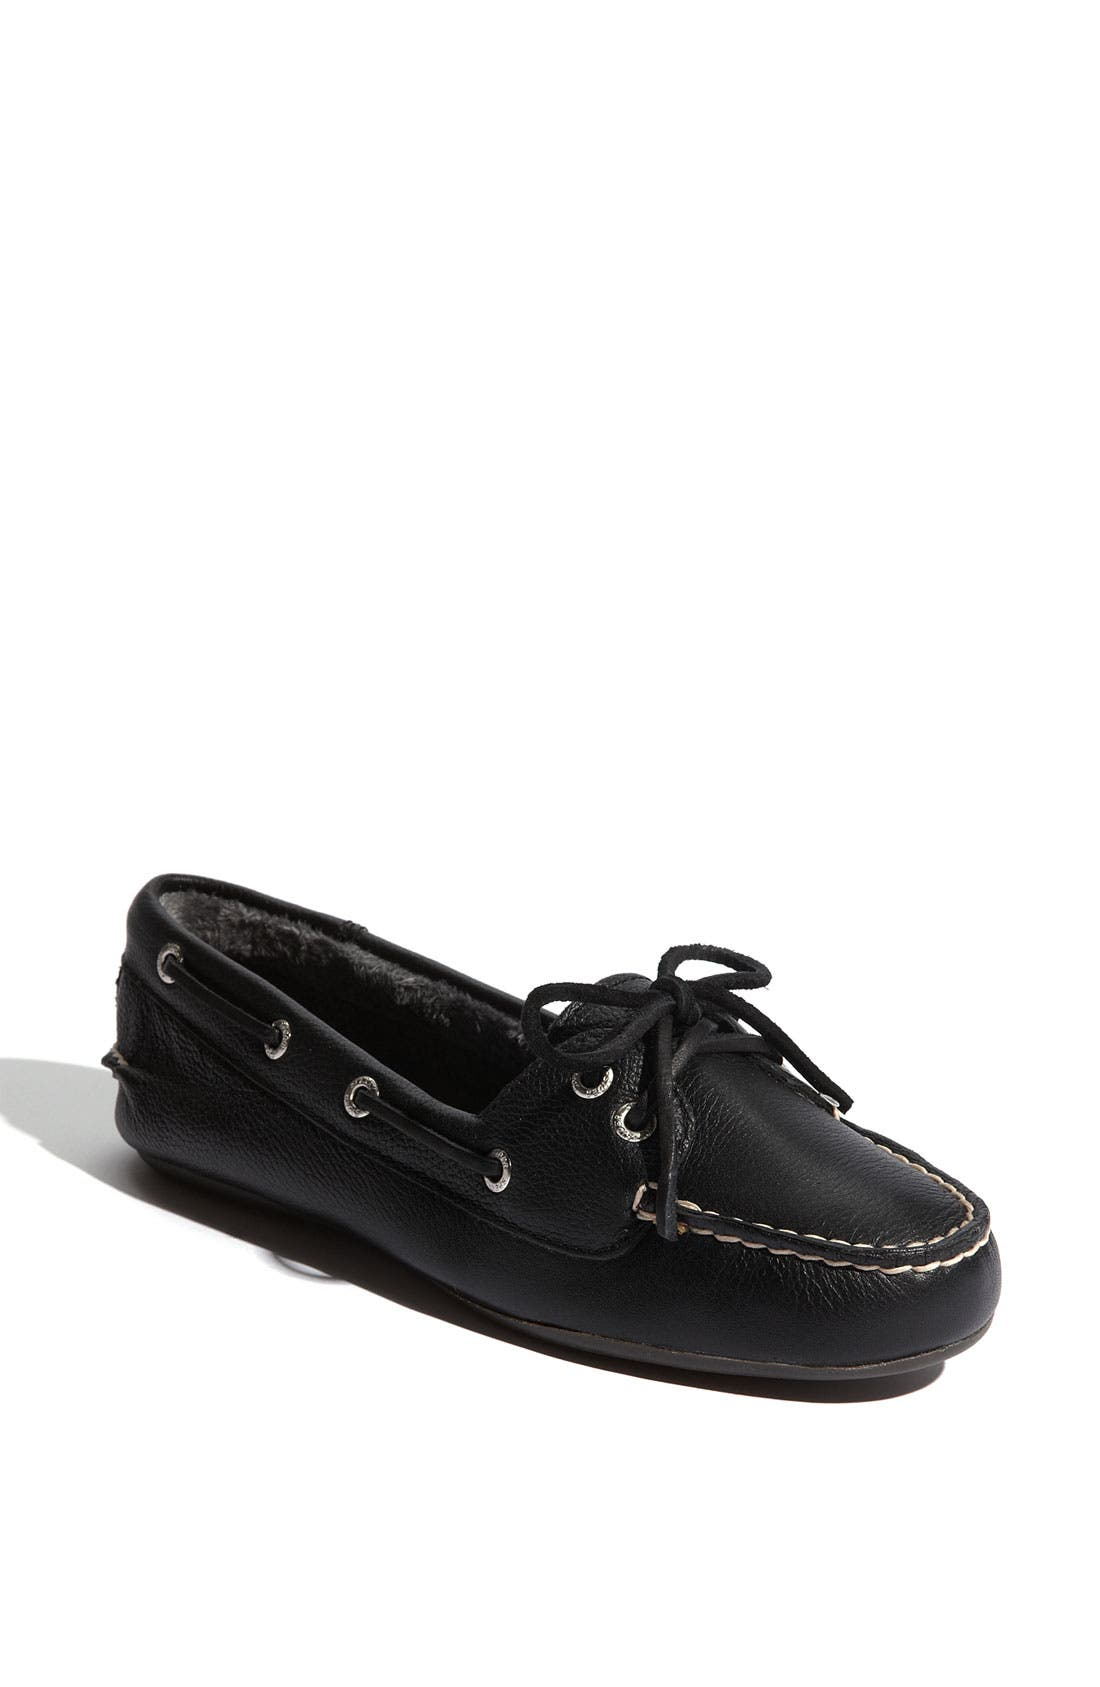 Top-Sider<sup>®</sup> 'Skiff' Moccasin Slip-On,                         Main,                         color, 001